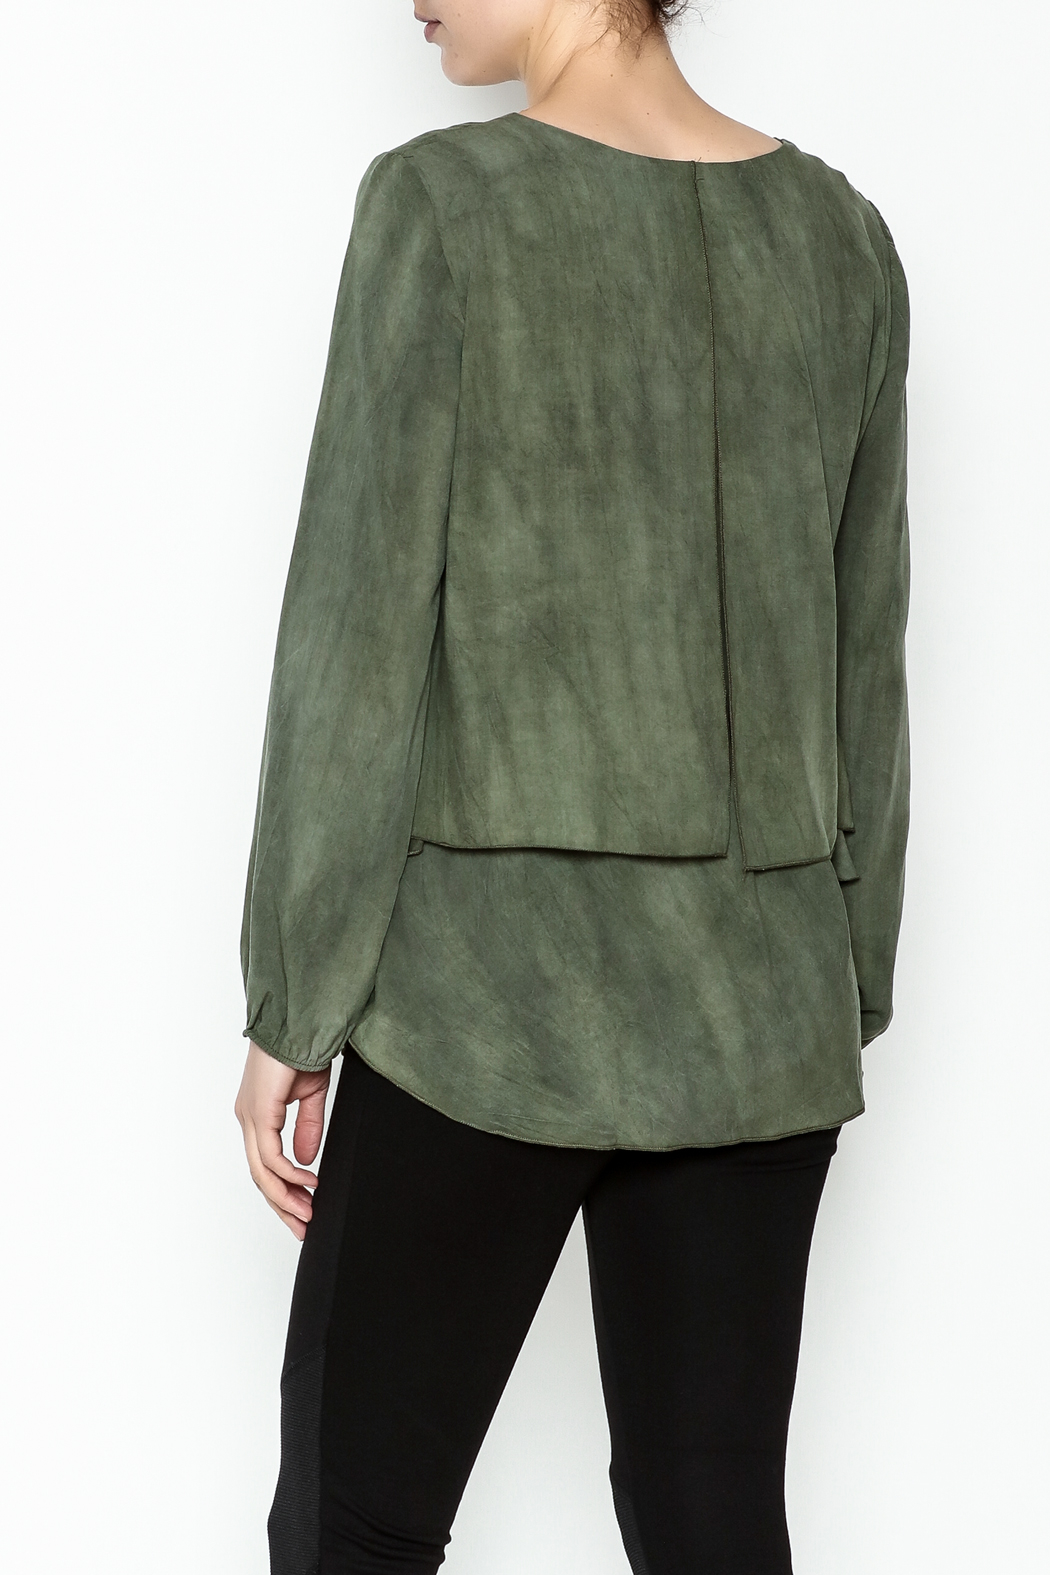 Kay Celine Darcy Double Layer Blouse - Back Cropped Image